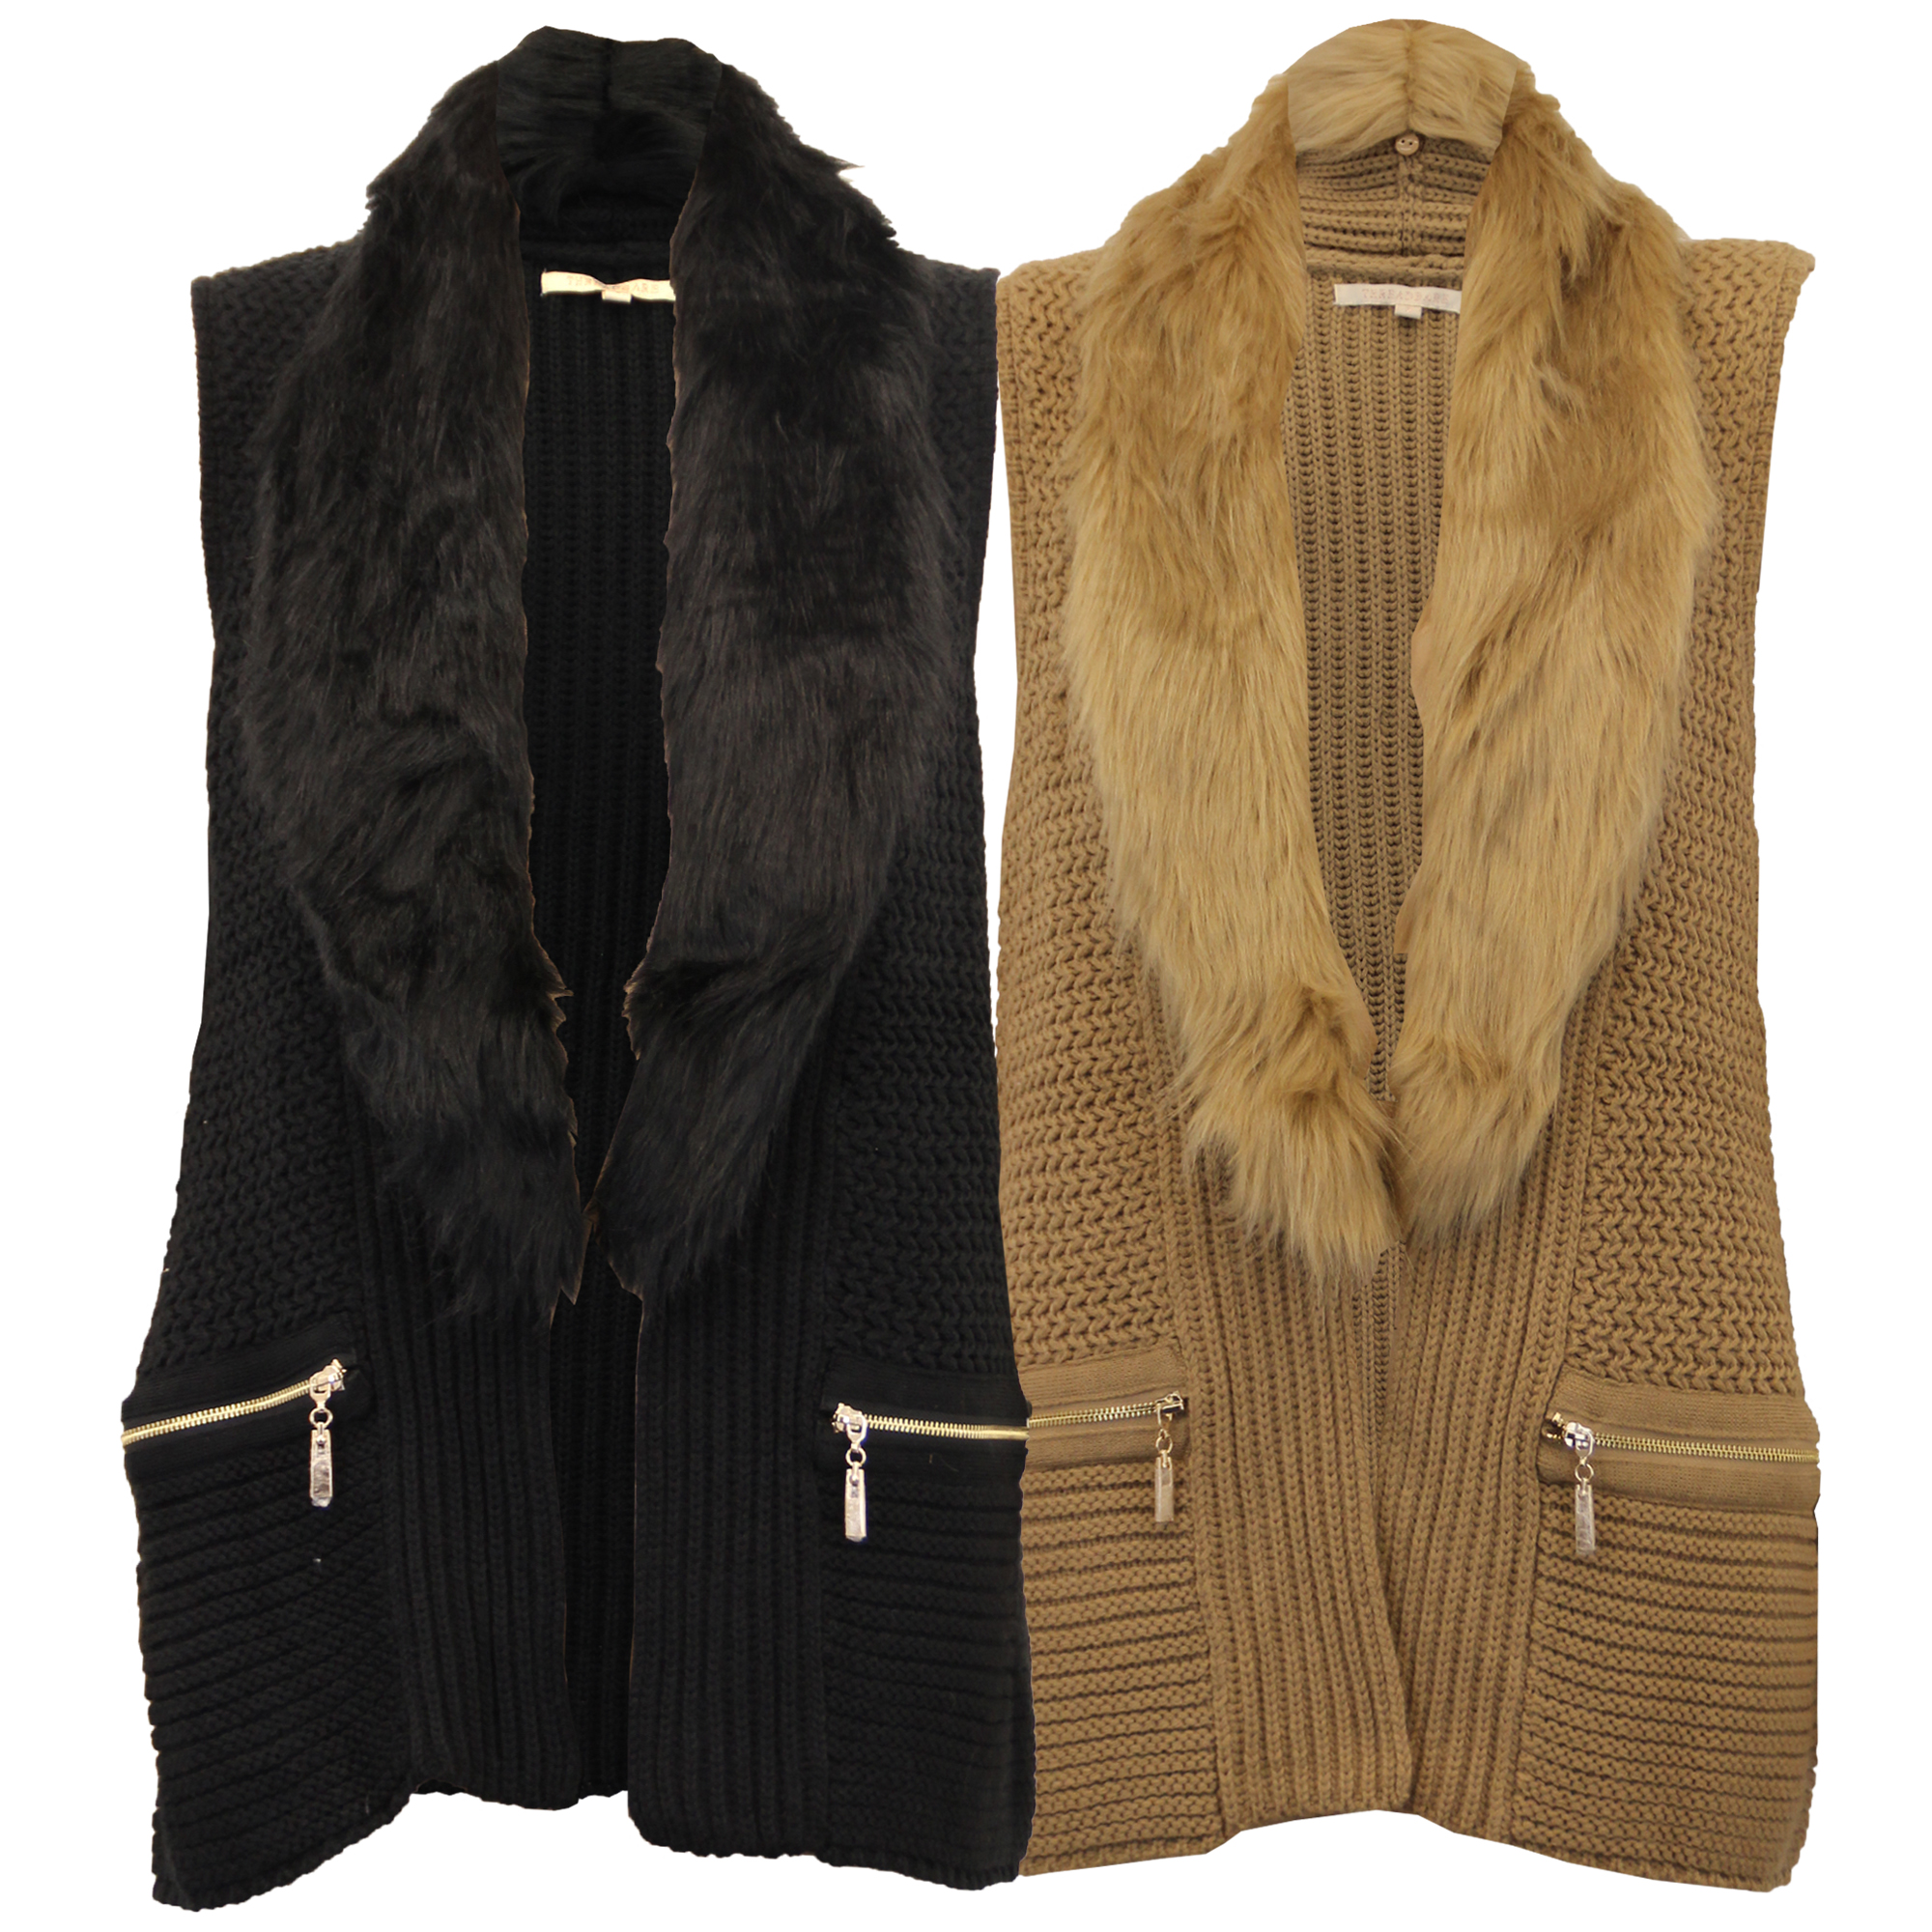 ShiJiaZhuang RunZest Trading Co., Ltd have been specialized in Fur Clothes manufacture for many years. Our main products are various kinds of Fur Coat Also including Fur Jacket,Fur Gilet, etc.